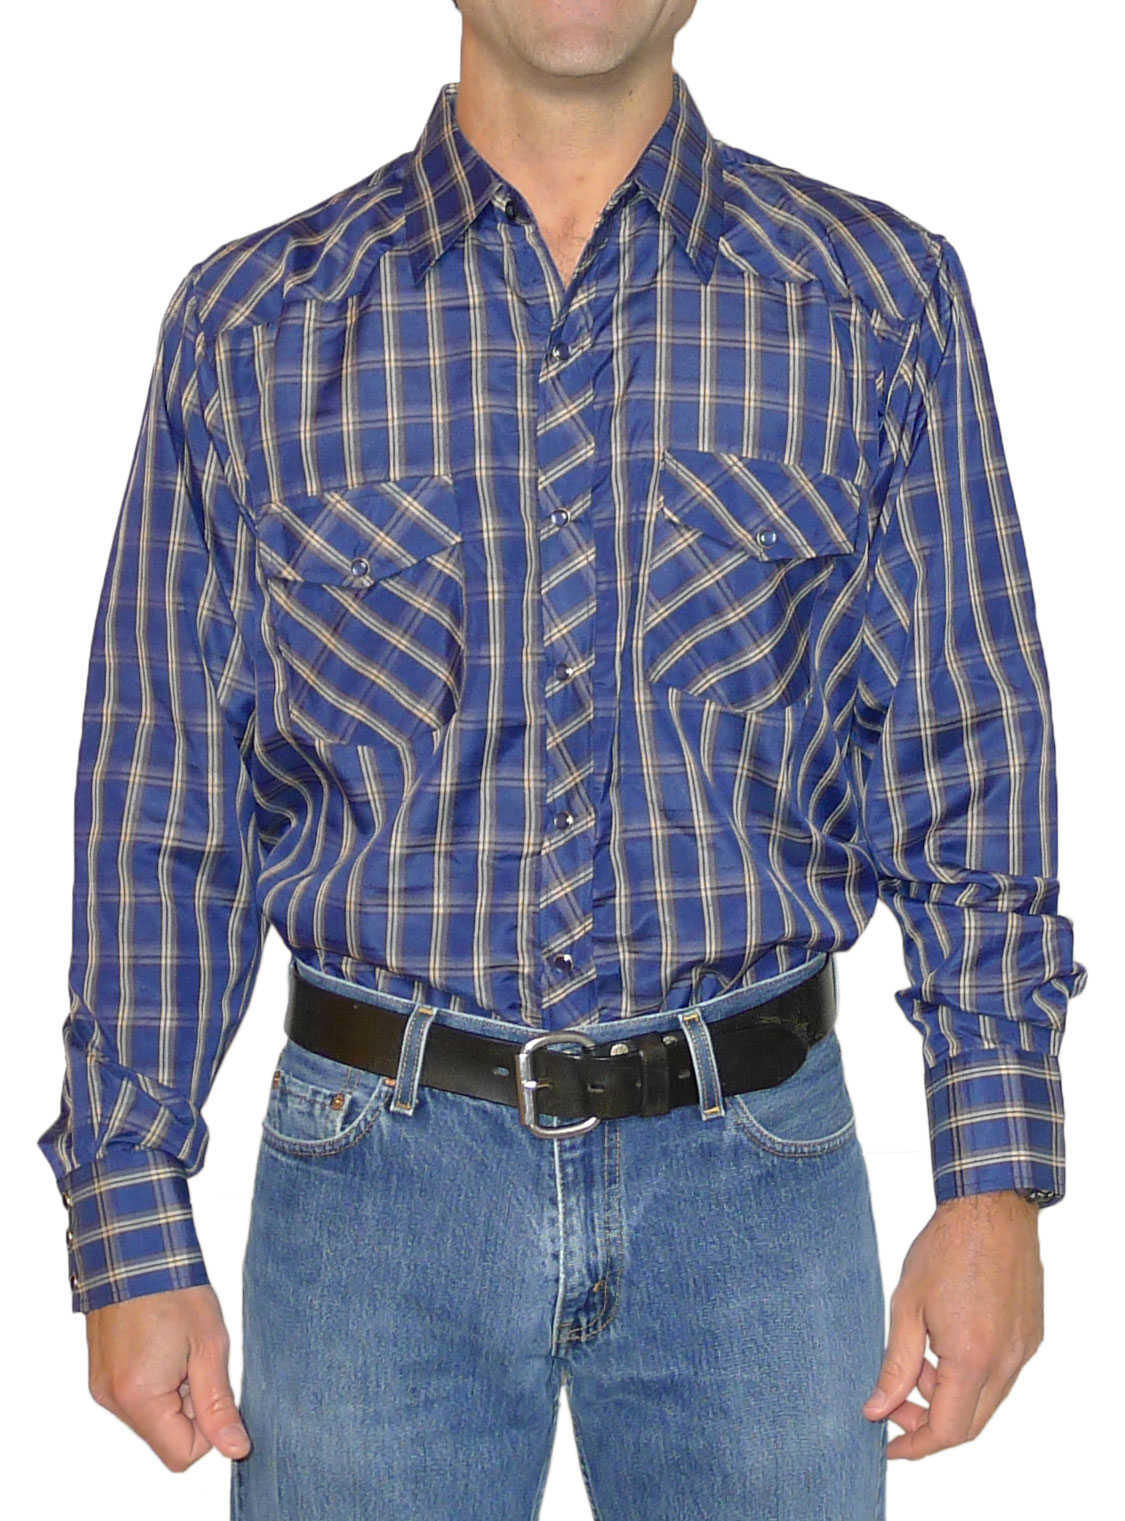 Wholesale Western Style Cowboy Shirts By Squish